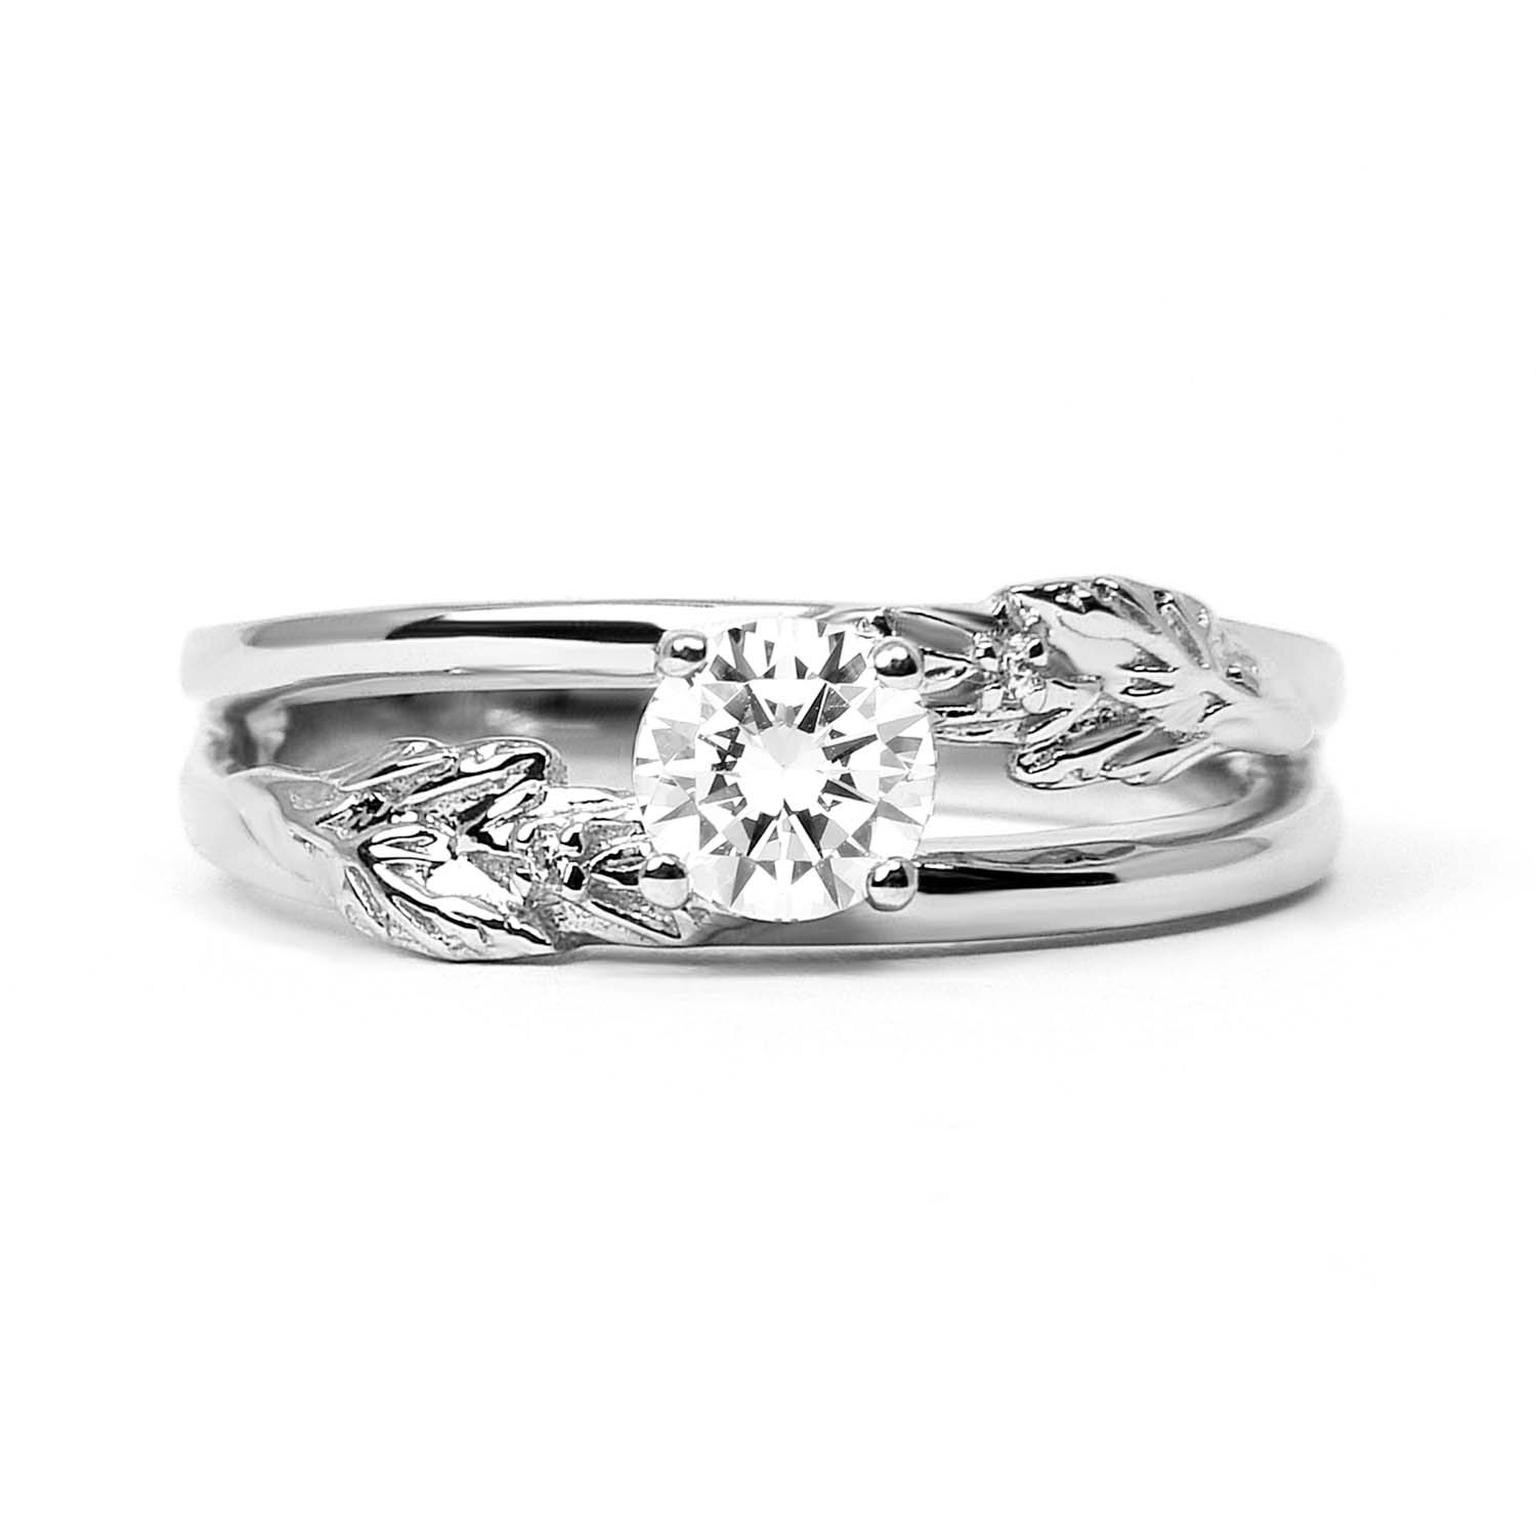 Arabel Lebrusan Royal Oak ethical diamond engagement ring, made from recycled platinum (from £2,800). From the Secret Garden collection.